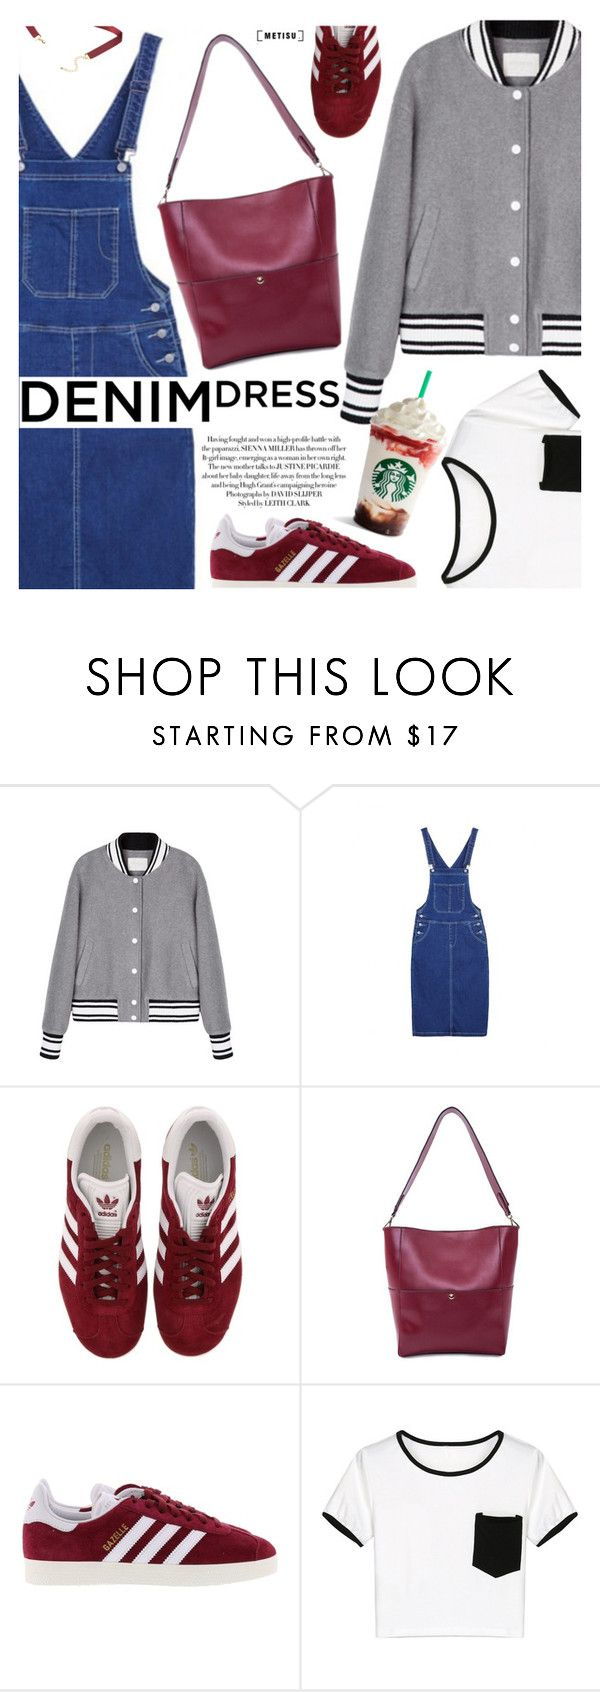 """""""Casual Style:Denim Dress"""" by metisu-fashion ❤ liked on Polyvore featuring adidas, WithChic, polyvoreeditorial, polyvoreset and metisu"""